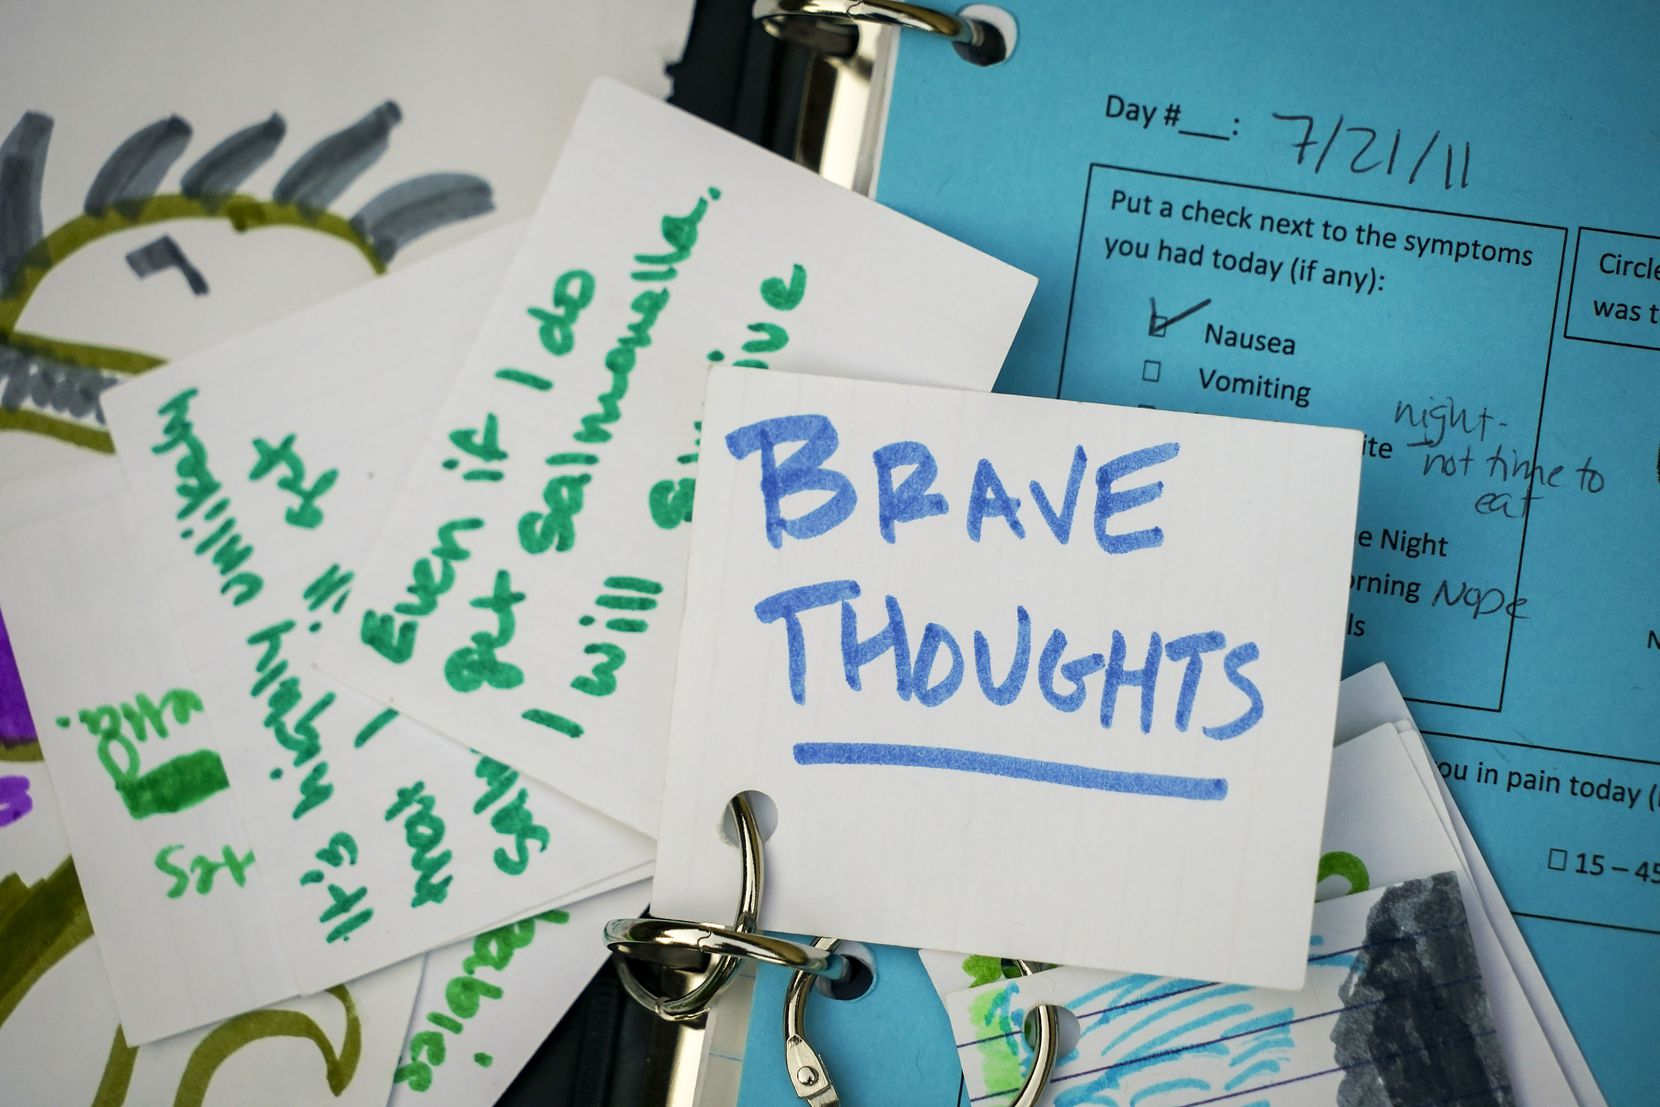 Cards that Jake Smith created in his childhood remind him to ignore his worries and focus on brave thoughts.